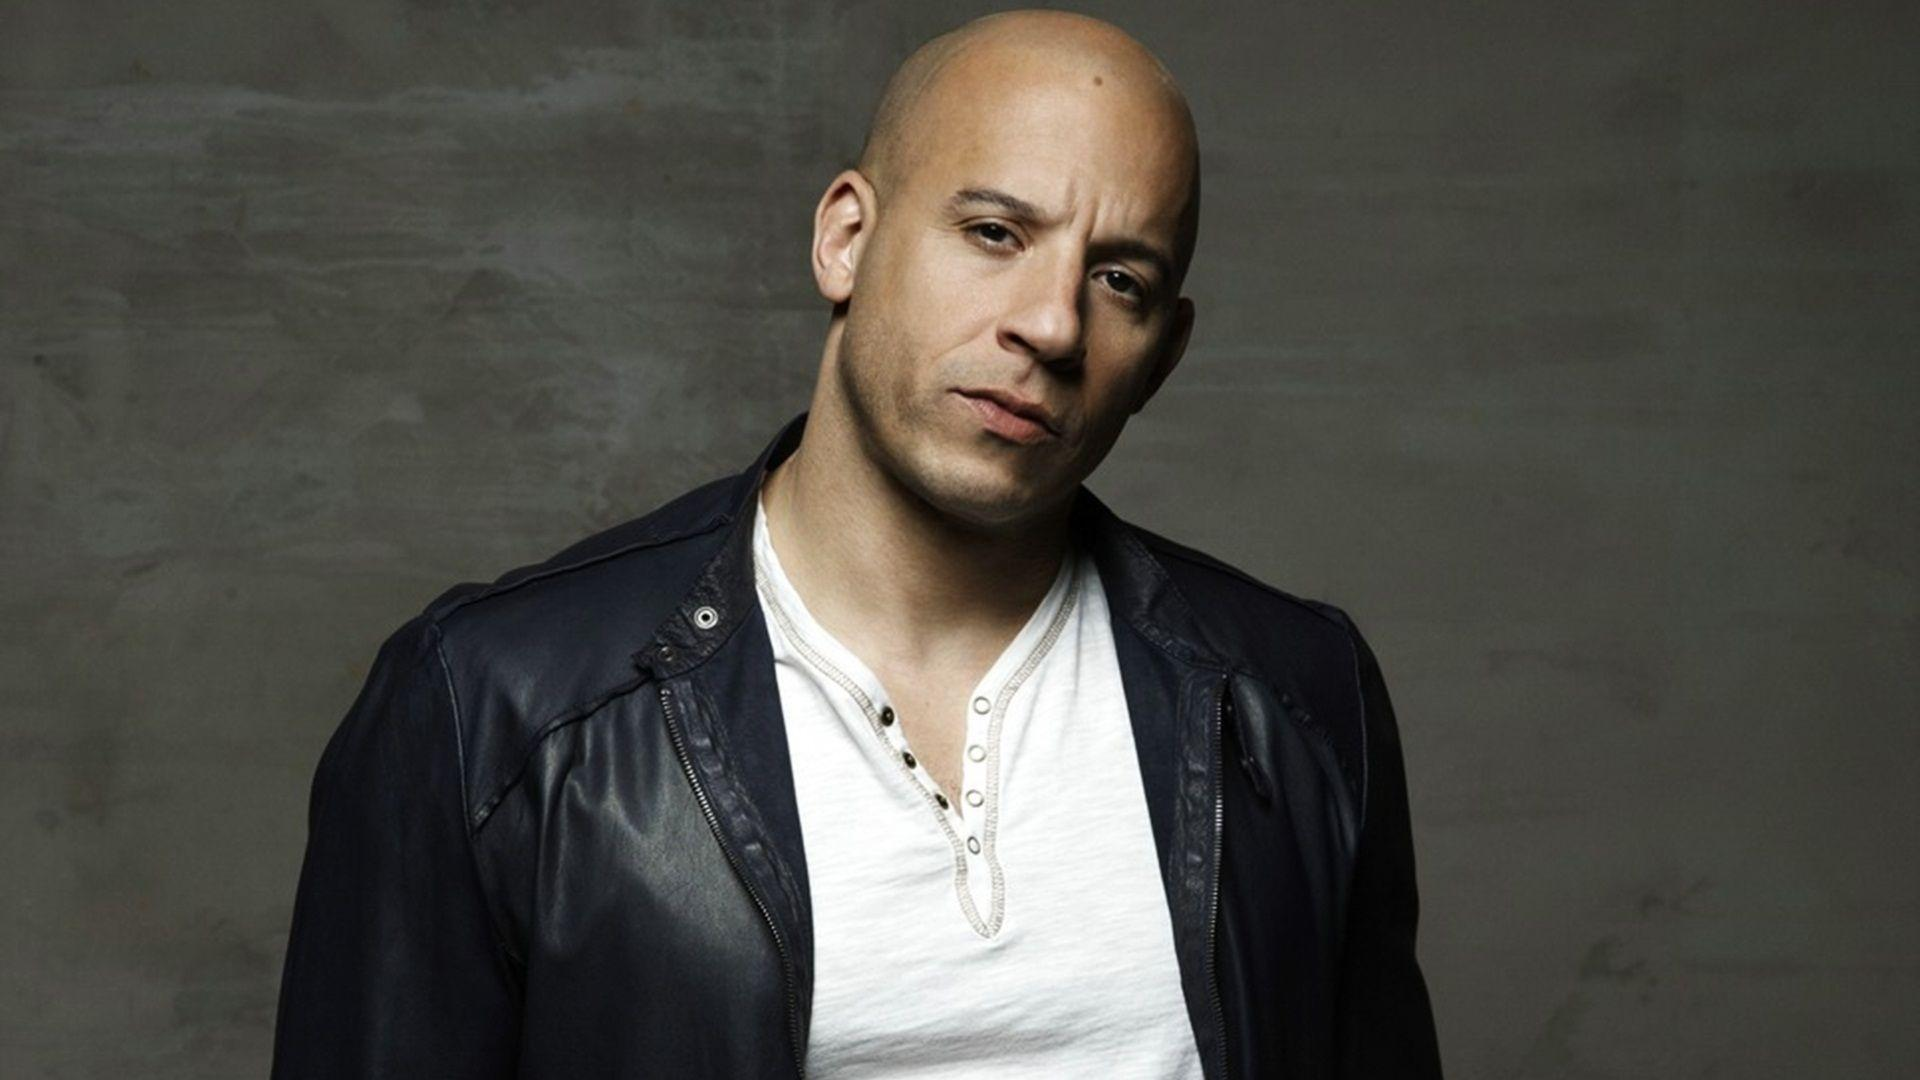 Vin Diesel Wallpapers - Full HD for Desktop